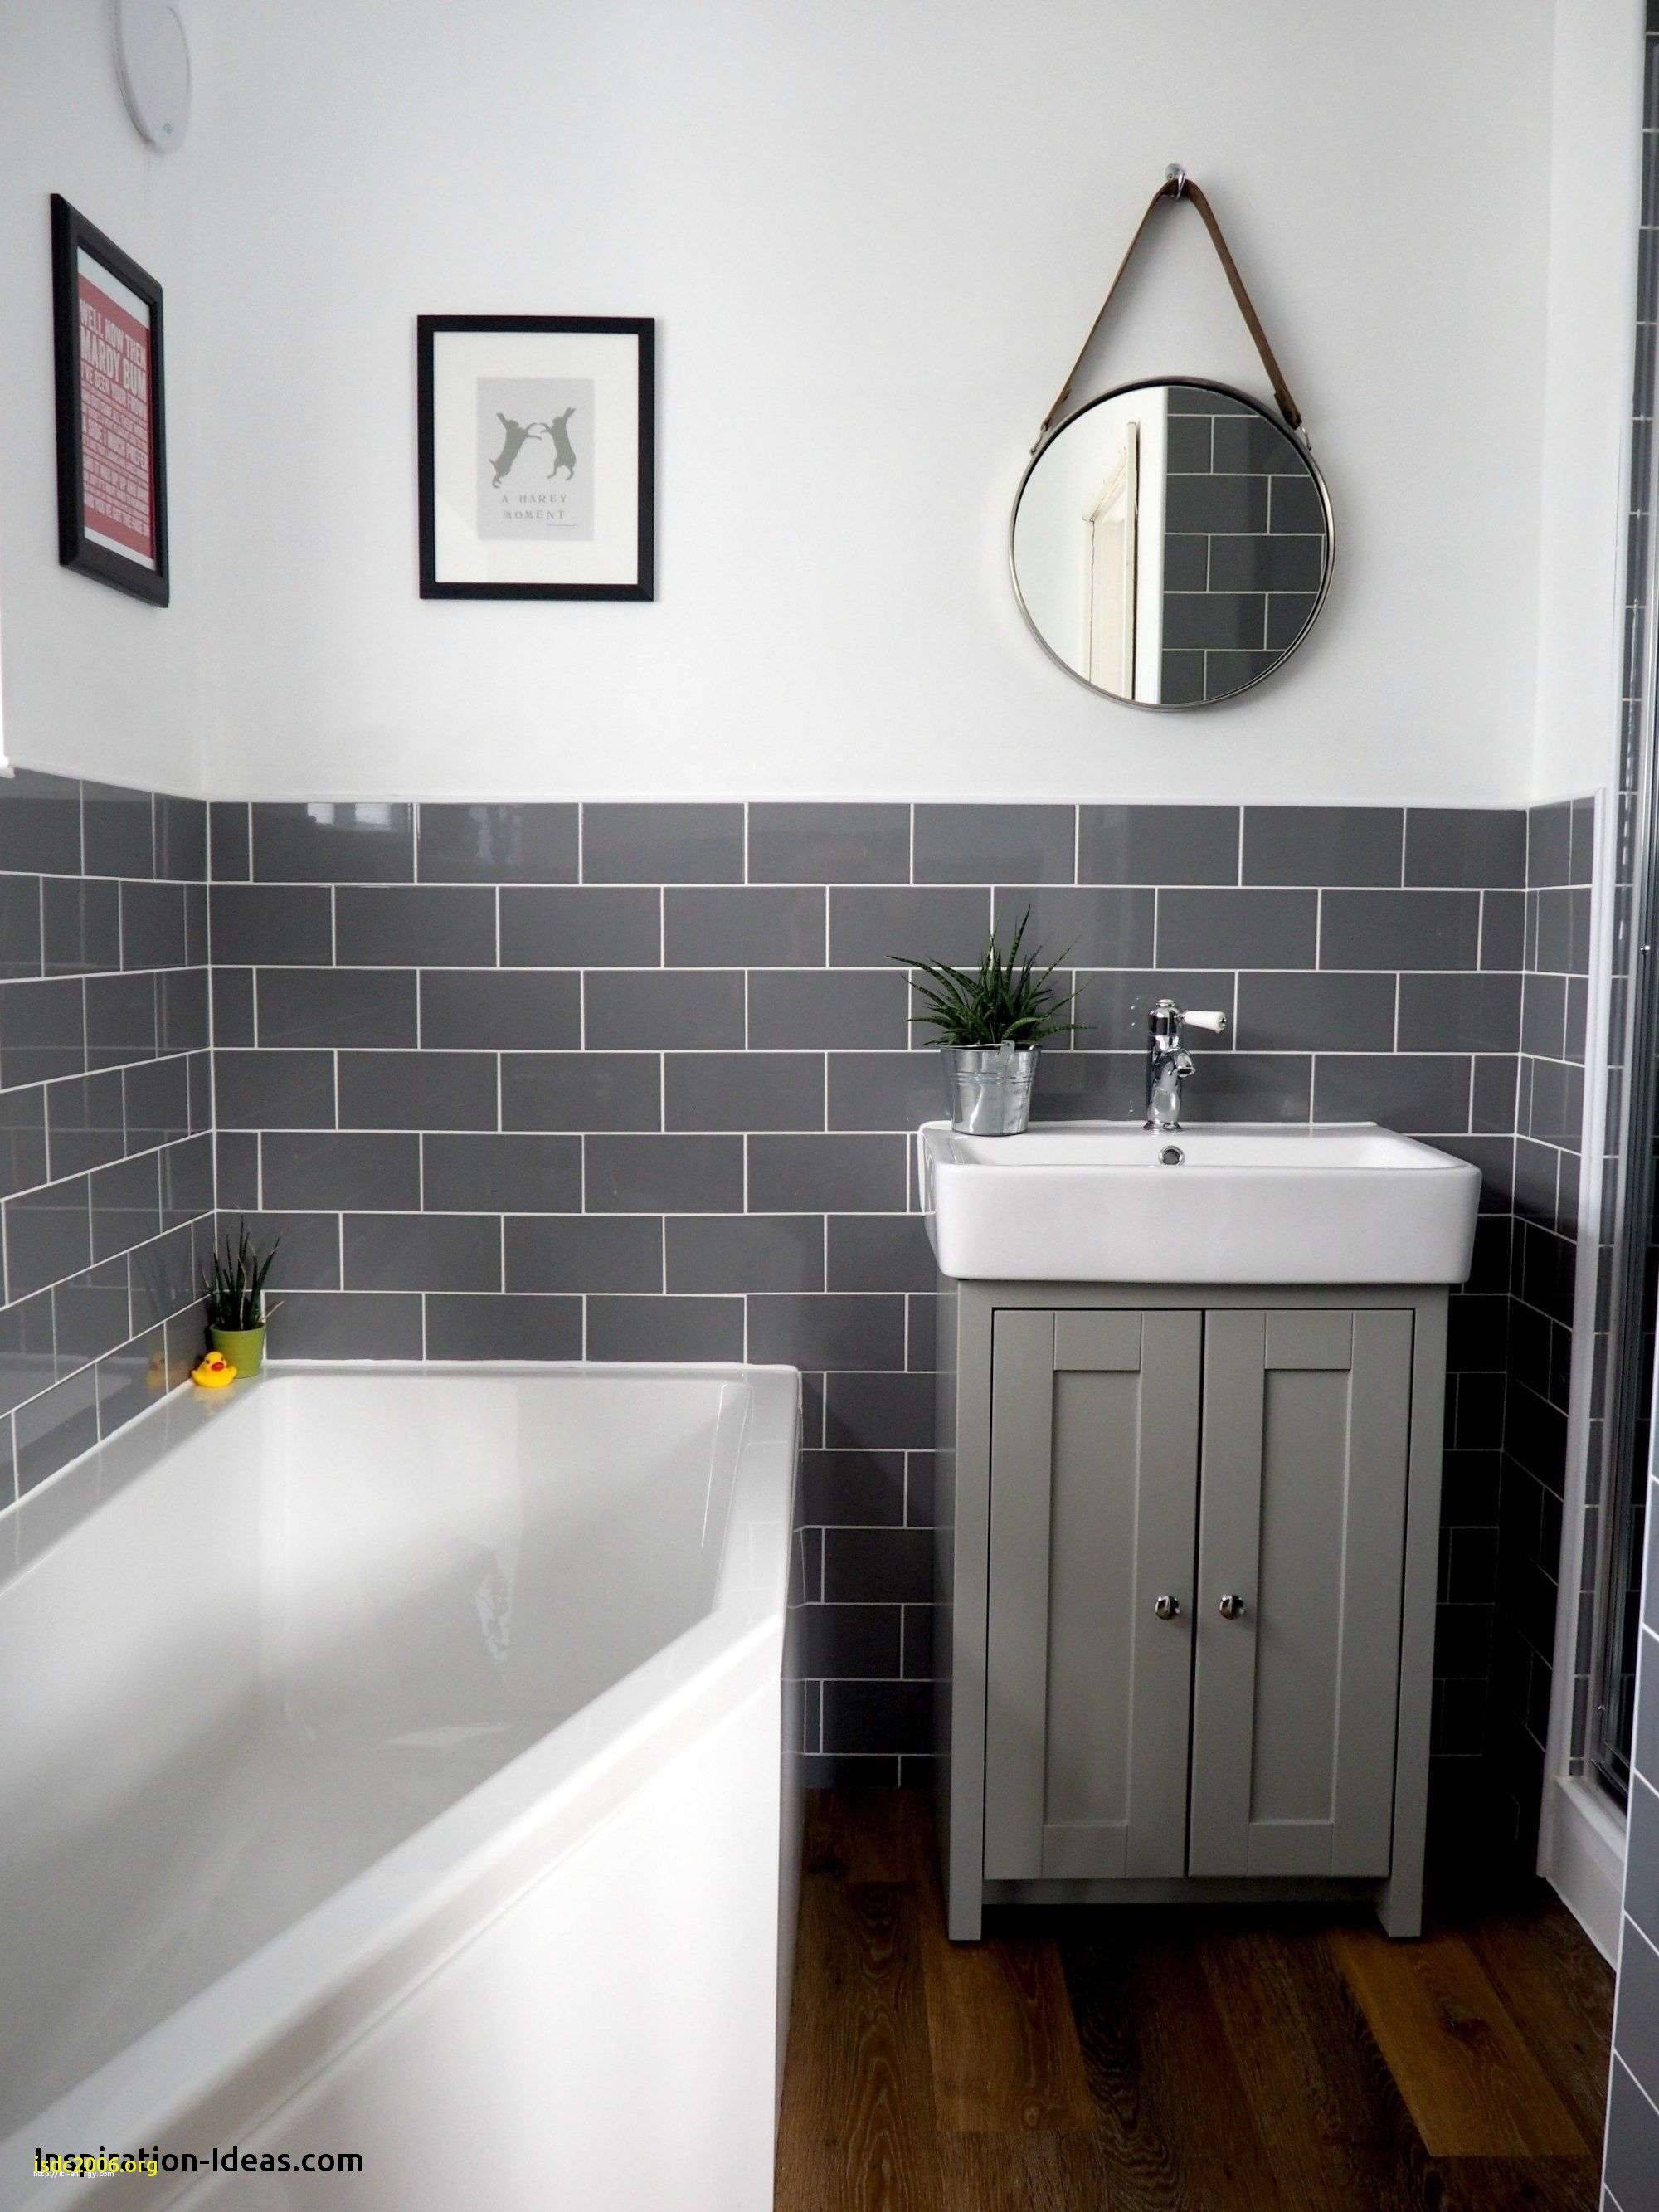 bathroom remodel ideas master small fresh new simple bathroom designs for small spaces of bathroom remodel ideas master small